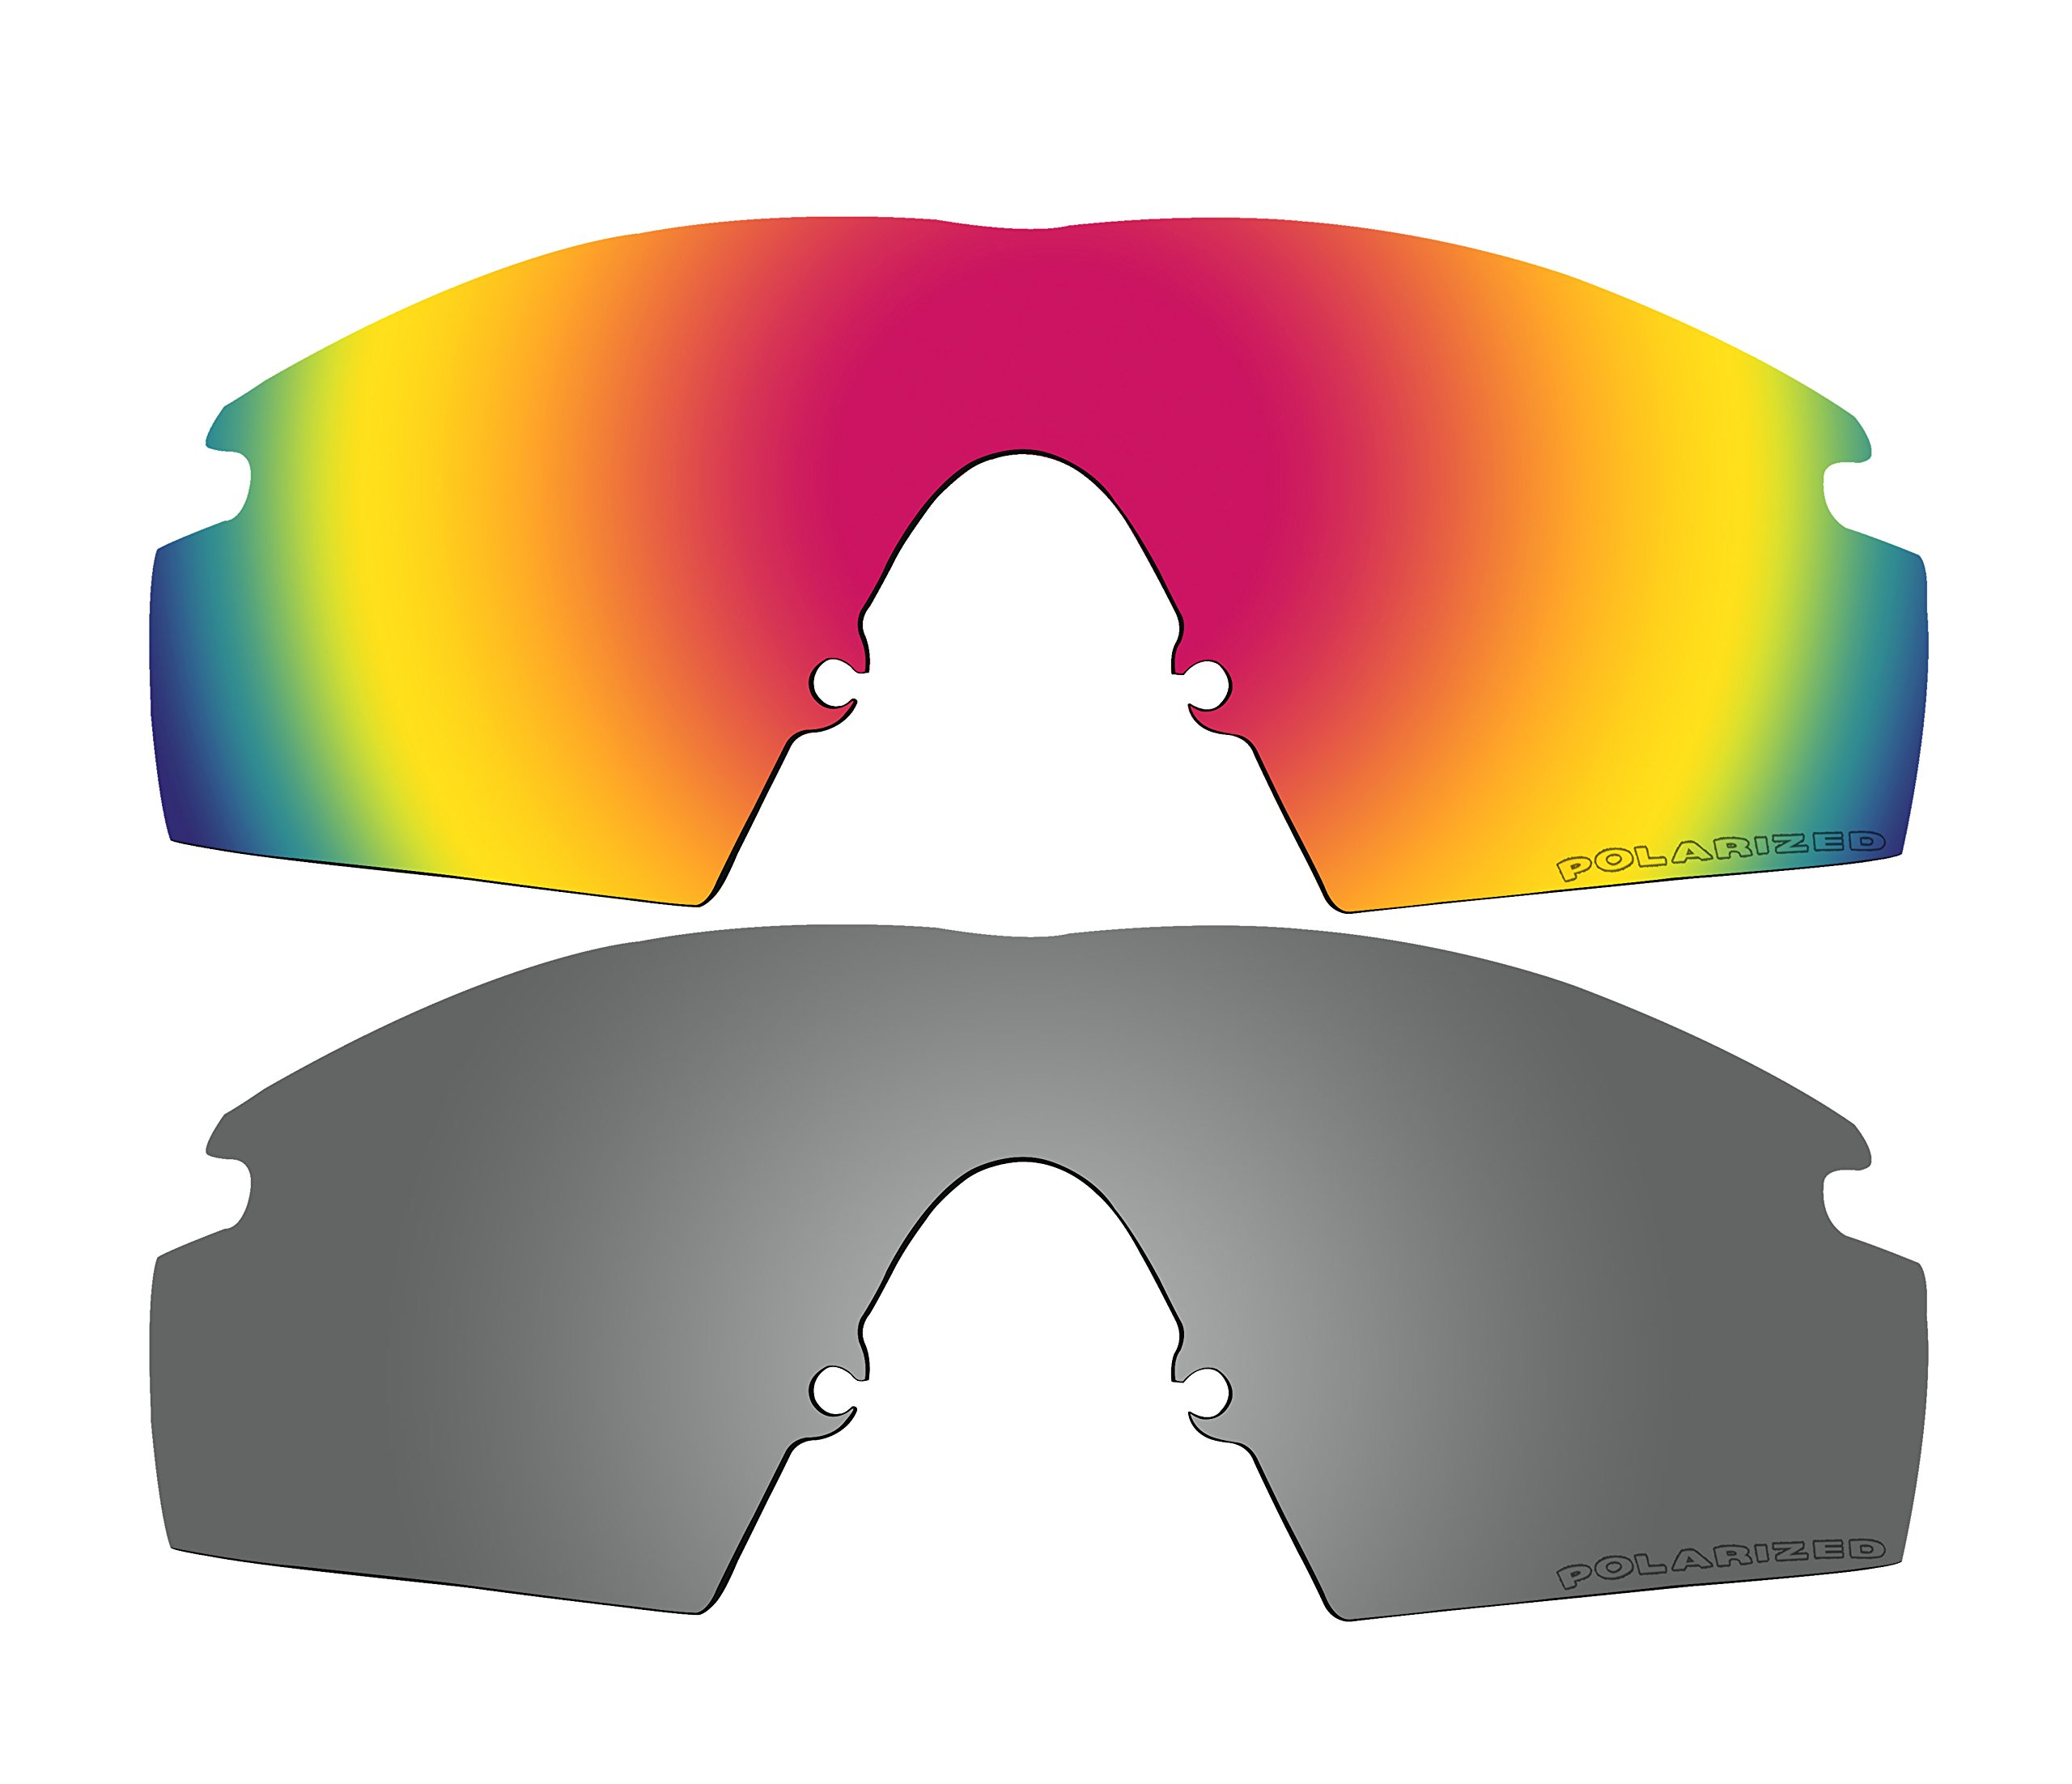 2 Pairs Polarized Replacement Lenses Red & Black Mirror for Oakley M Frame Strike, New (1999) Sunglasses by BVANQ